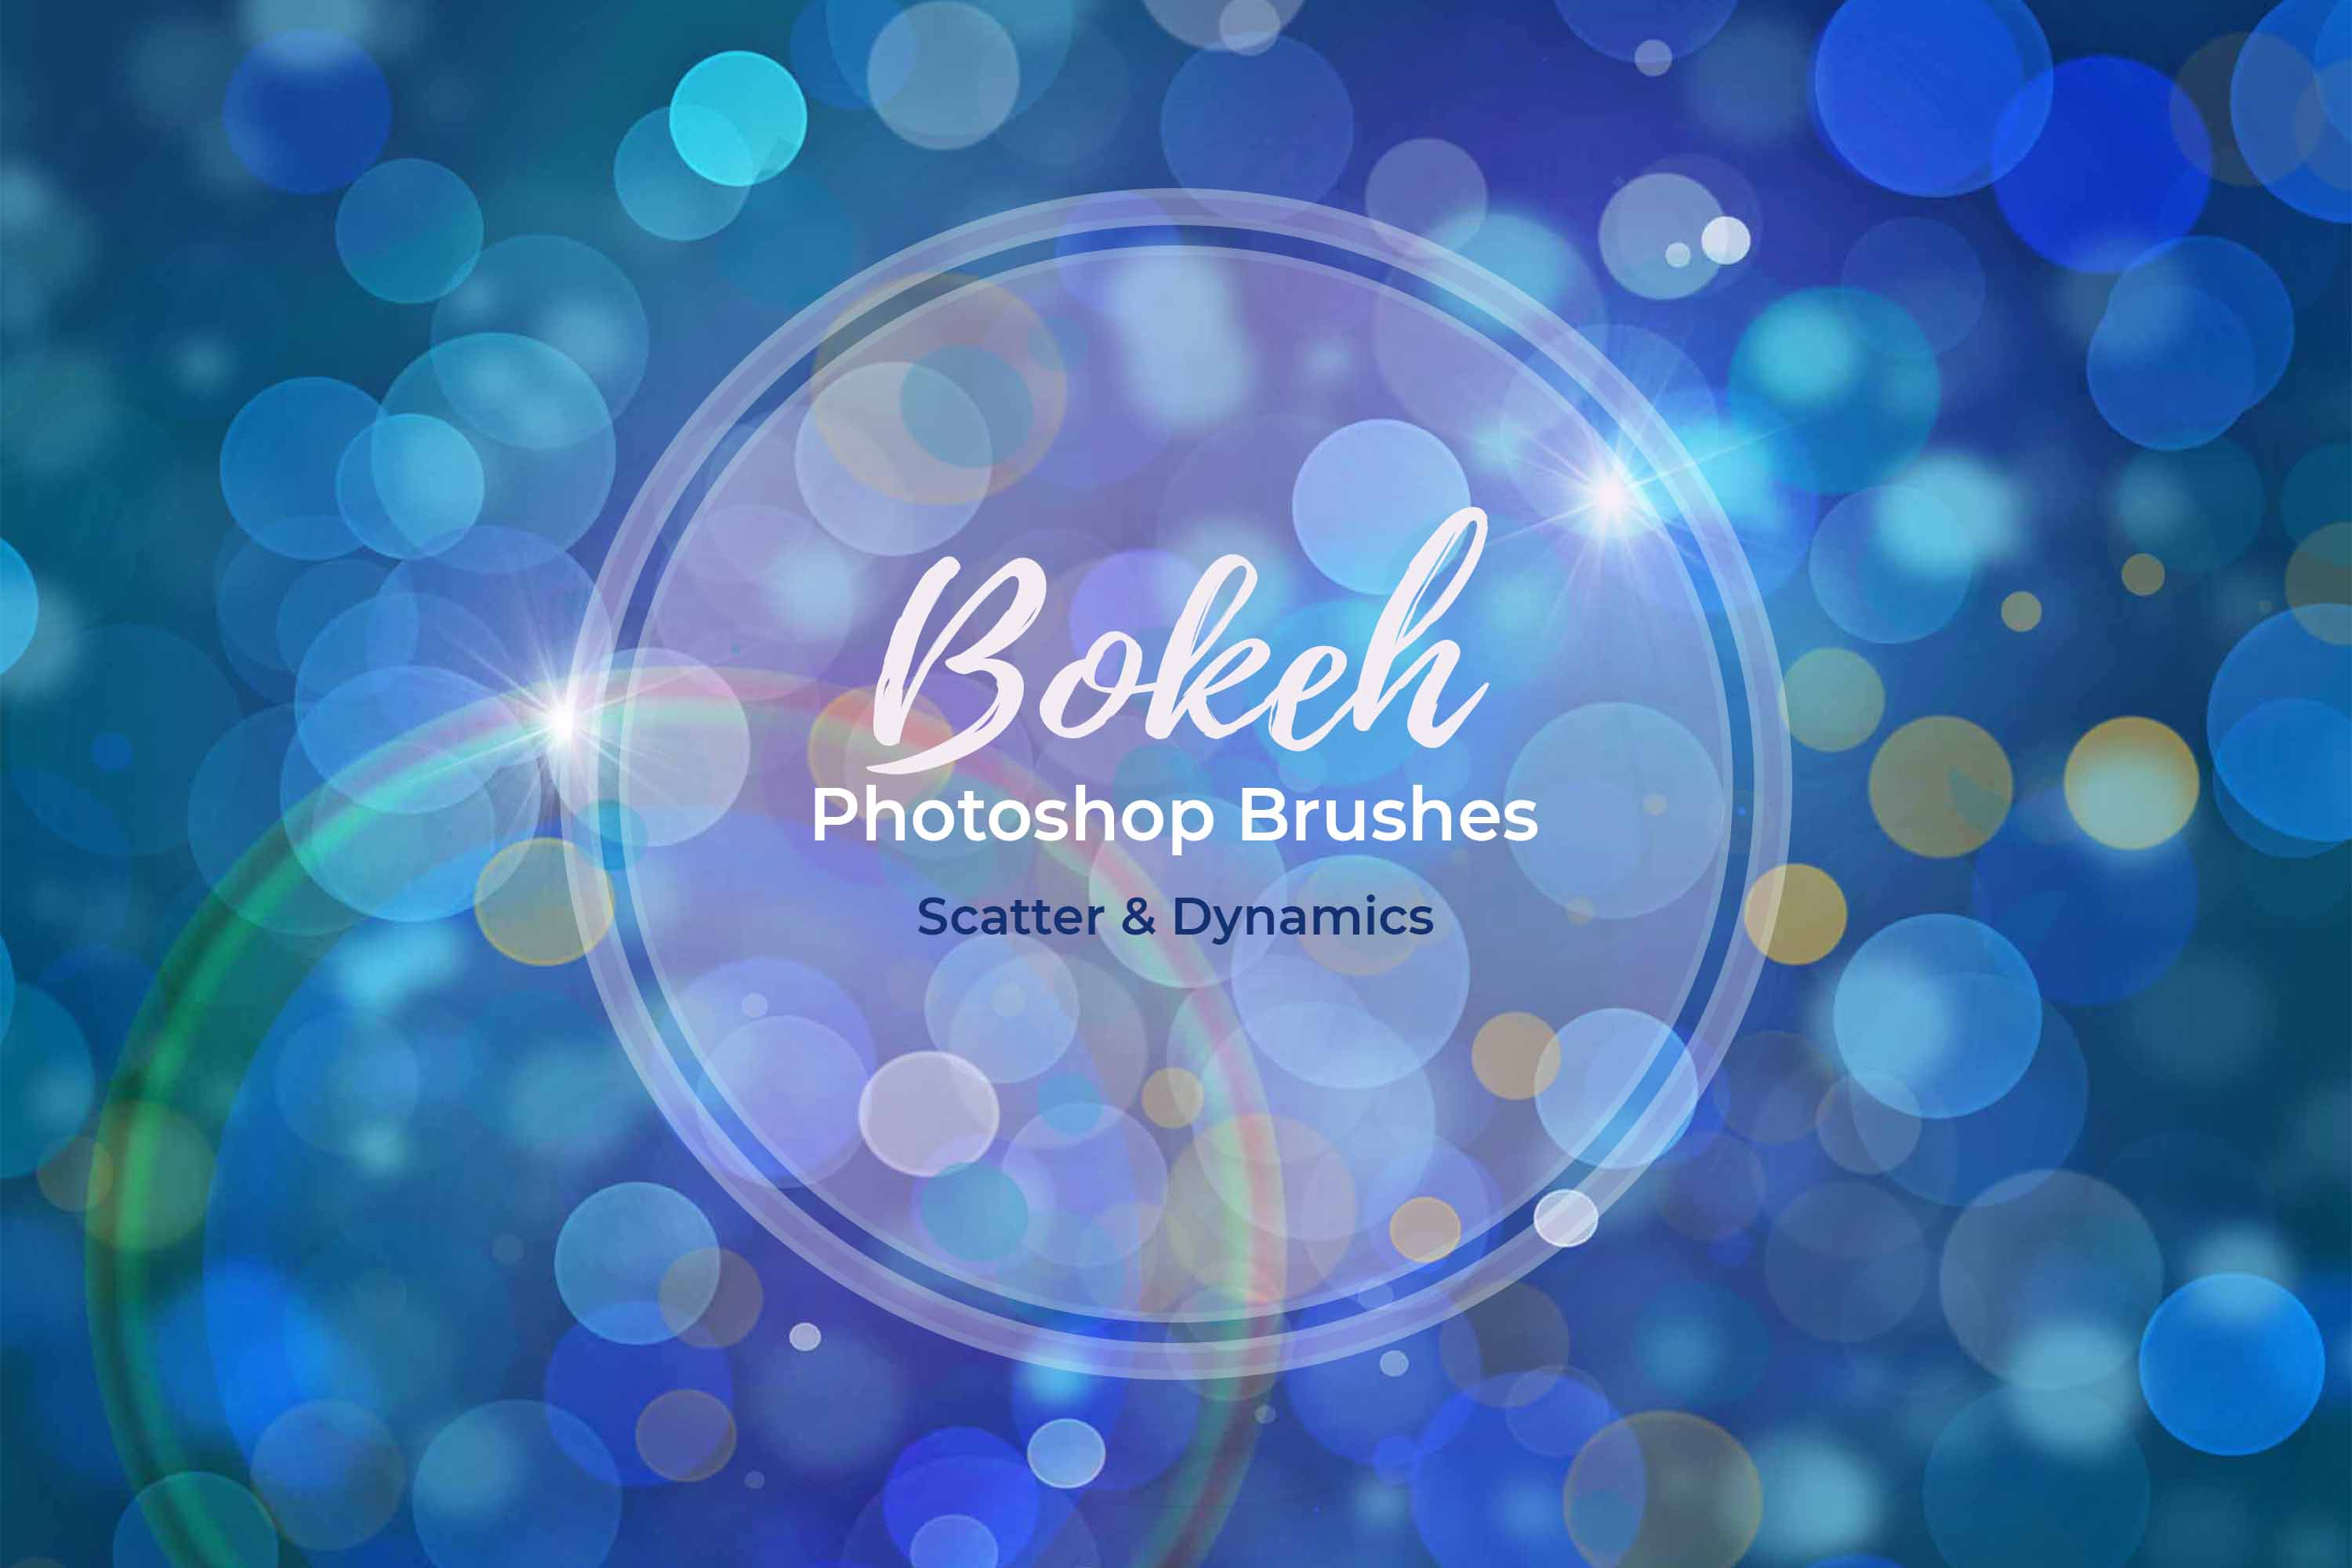 15 Bokeh Photoshop Brushes abr. - Scatter & Dynamics example image 6